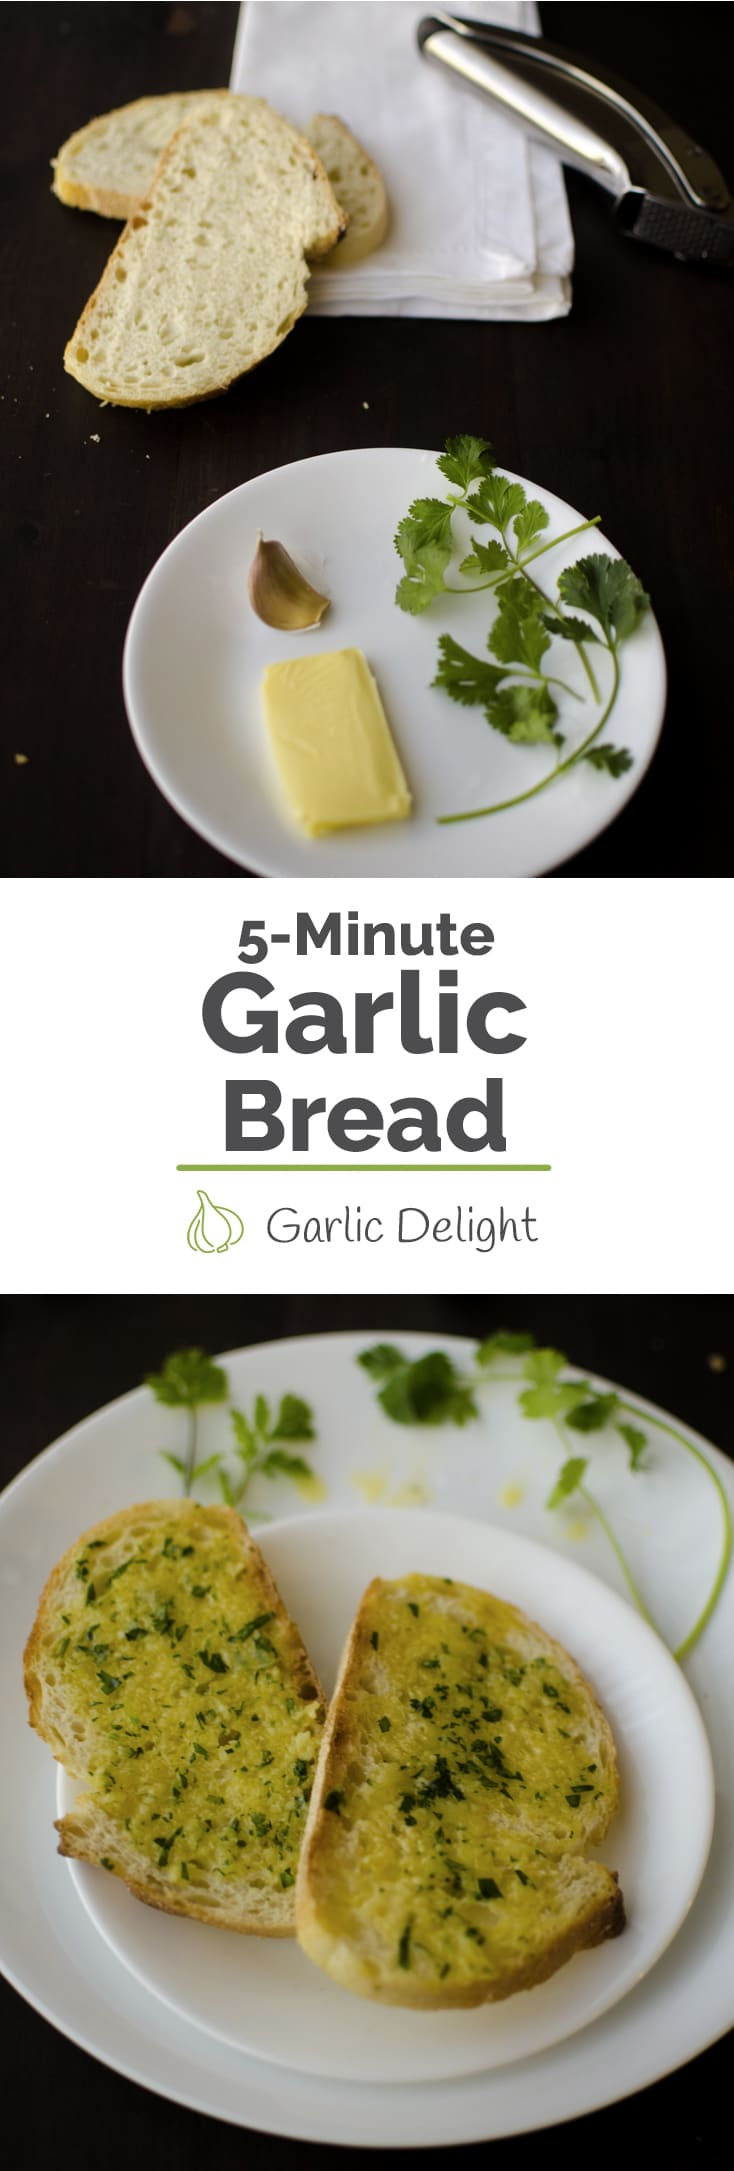 5-Minute Garlic Bread